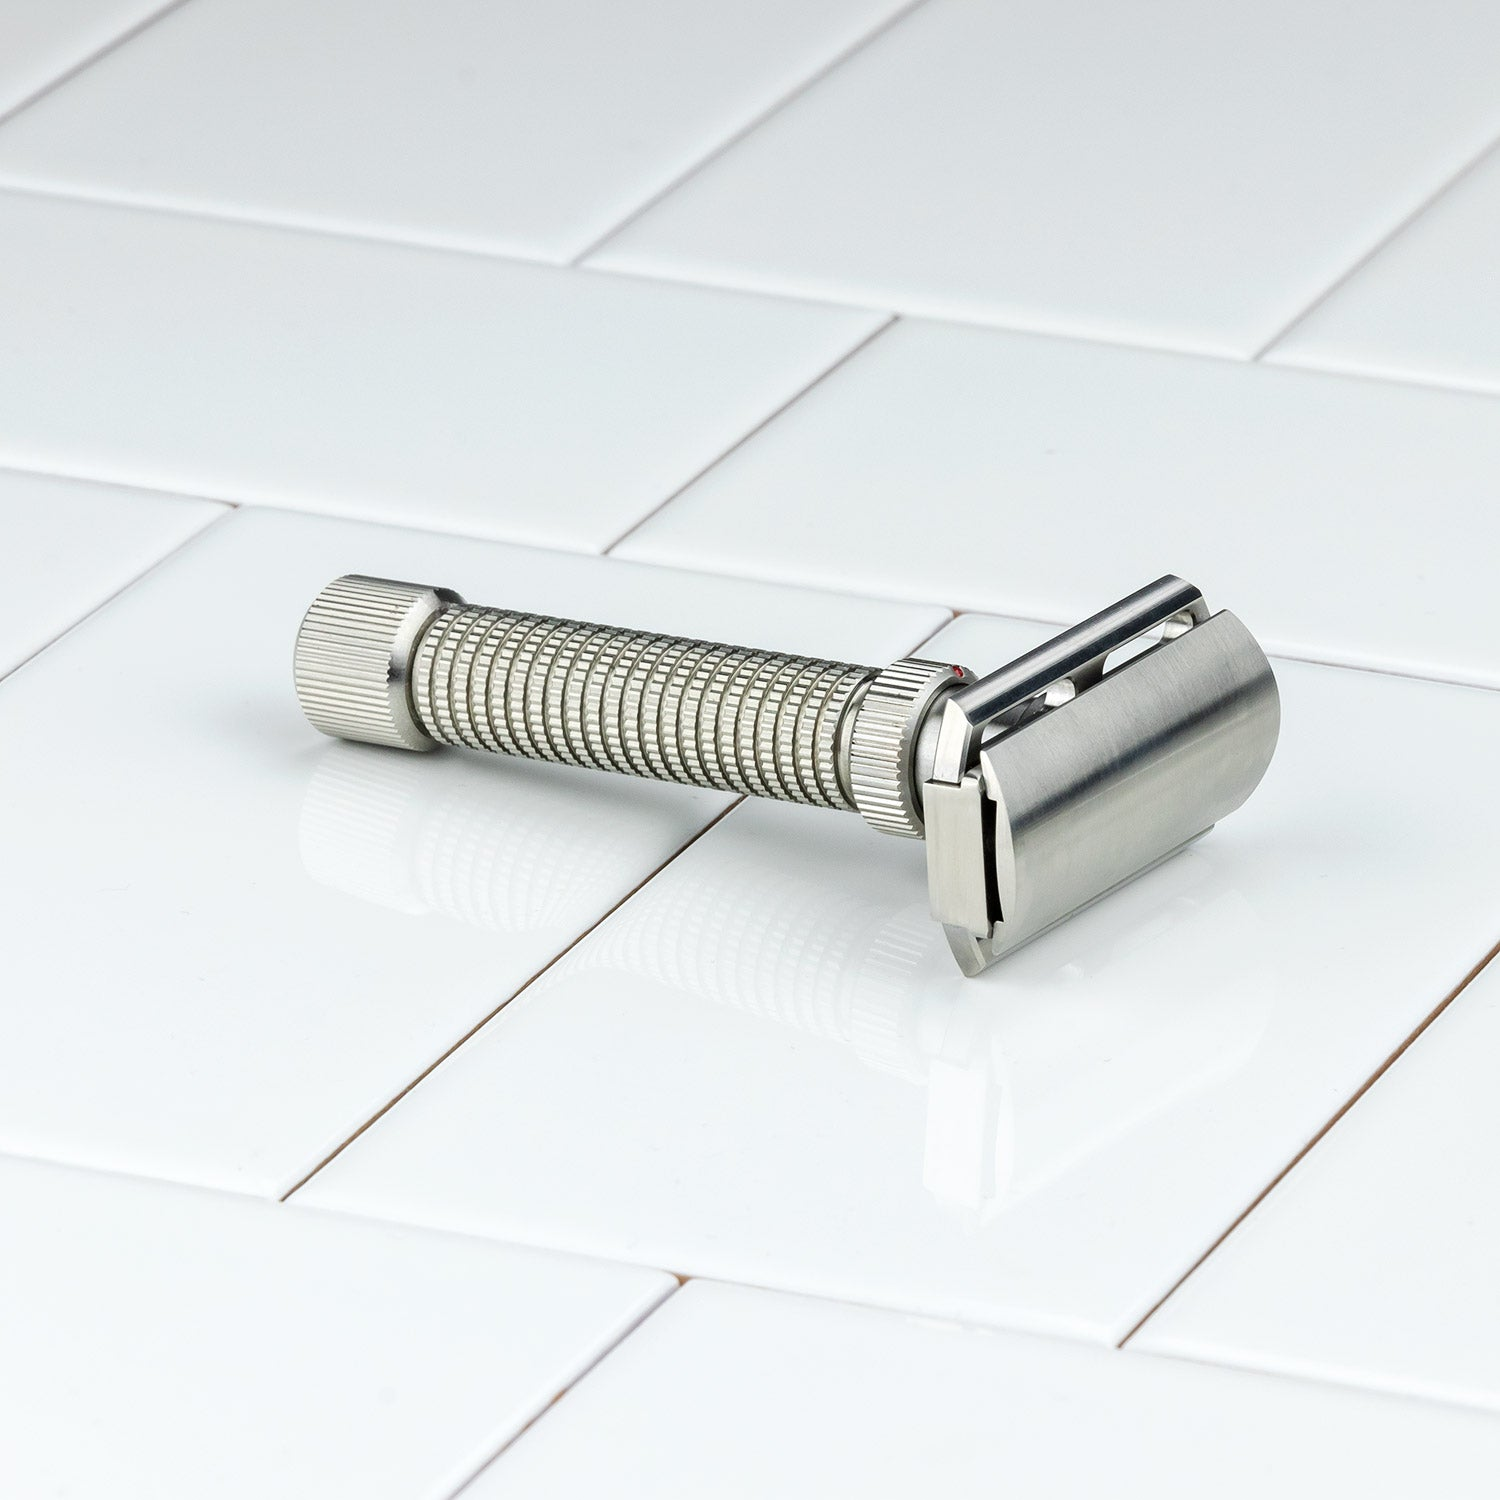 Rex Supply Co. Ambassador Adjustable DE Safety Razor